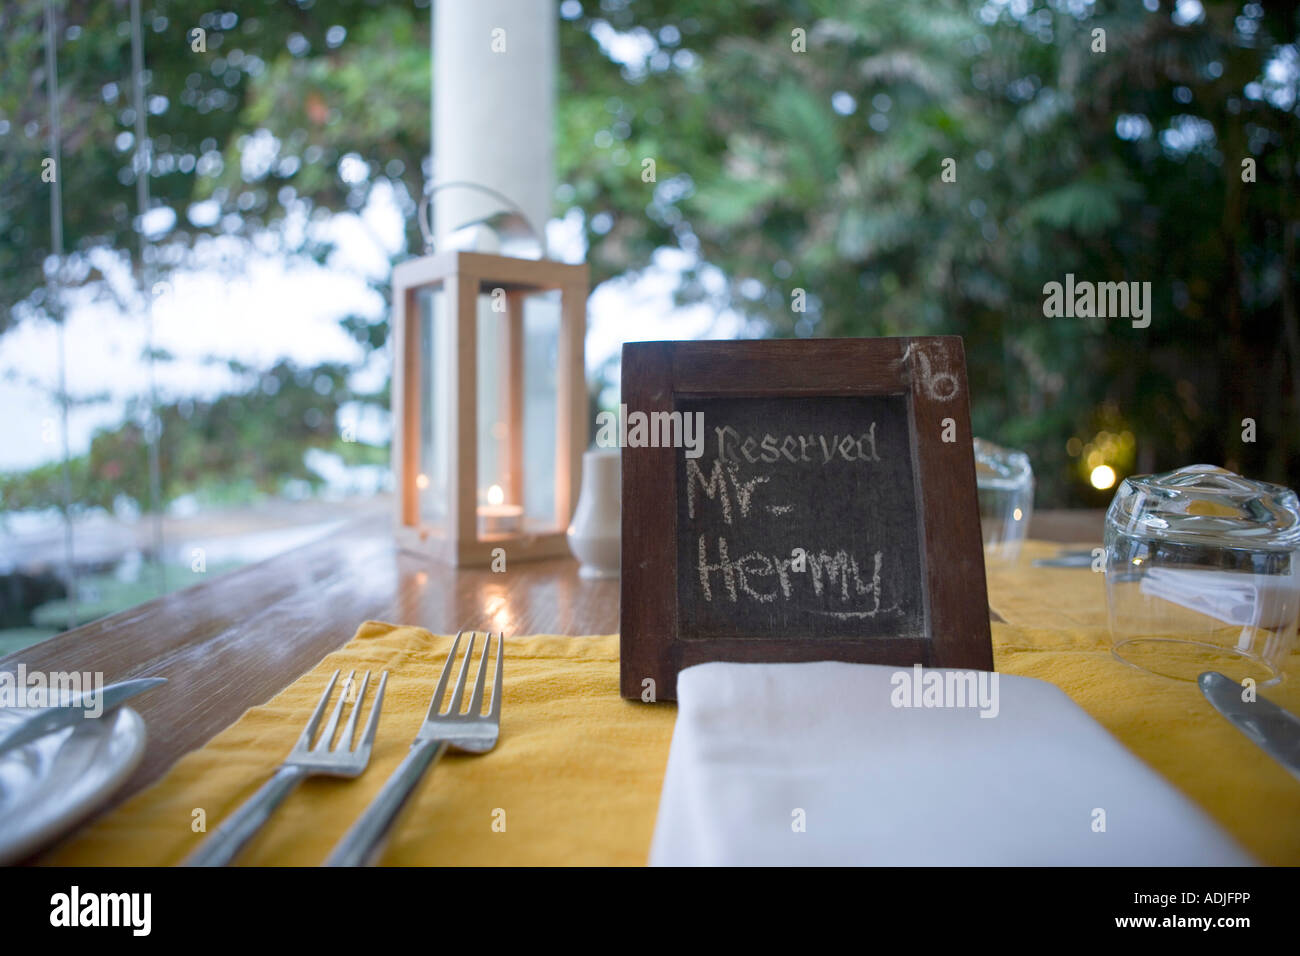 hotel resort tables in a restaurant - Stock Image